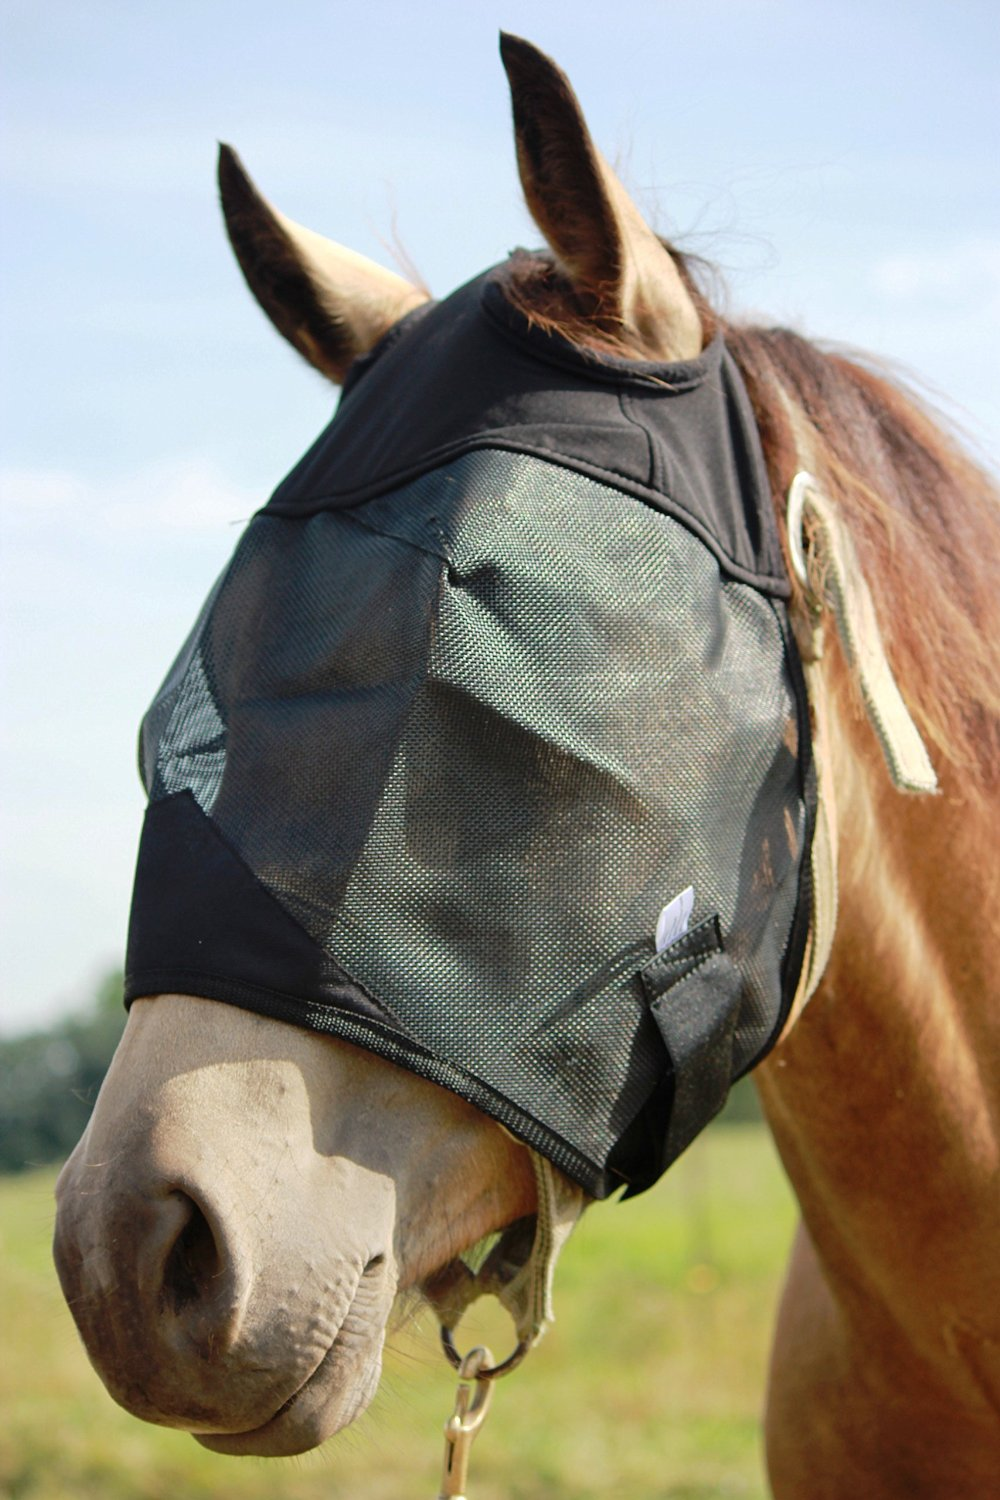 Standard Horse Fly Mask without ears and nose, All Around Barn, Stable, Pasture, Trail Riding Fly and Sun Protection Standard Fly Mask - Style: No Ears or Nose - All Sizes